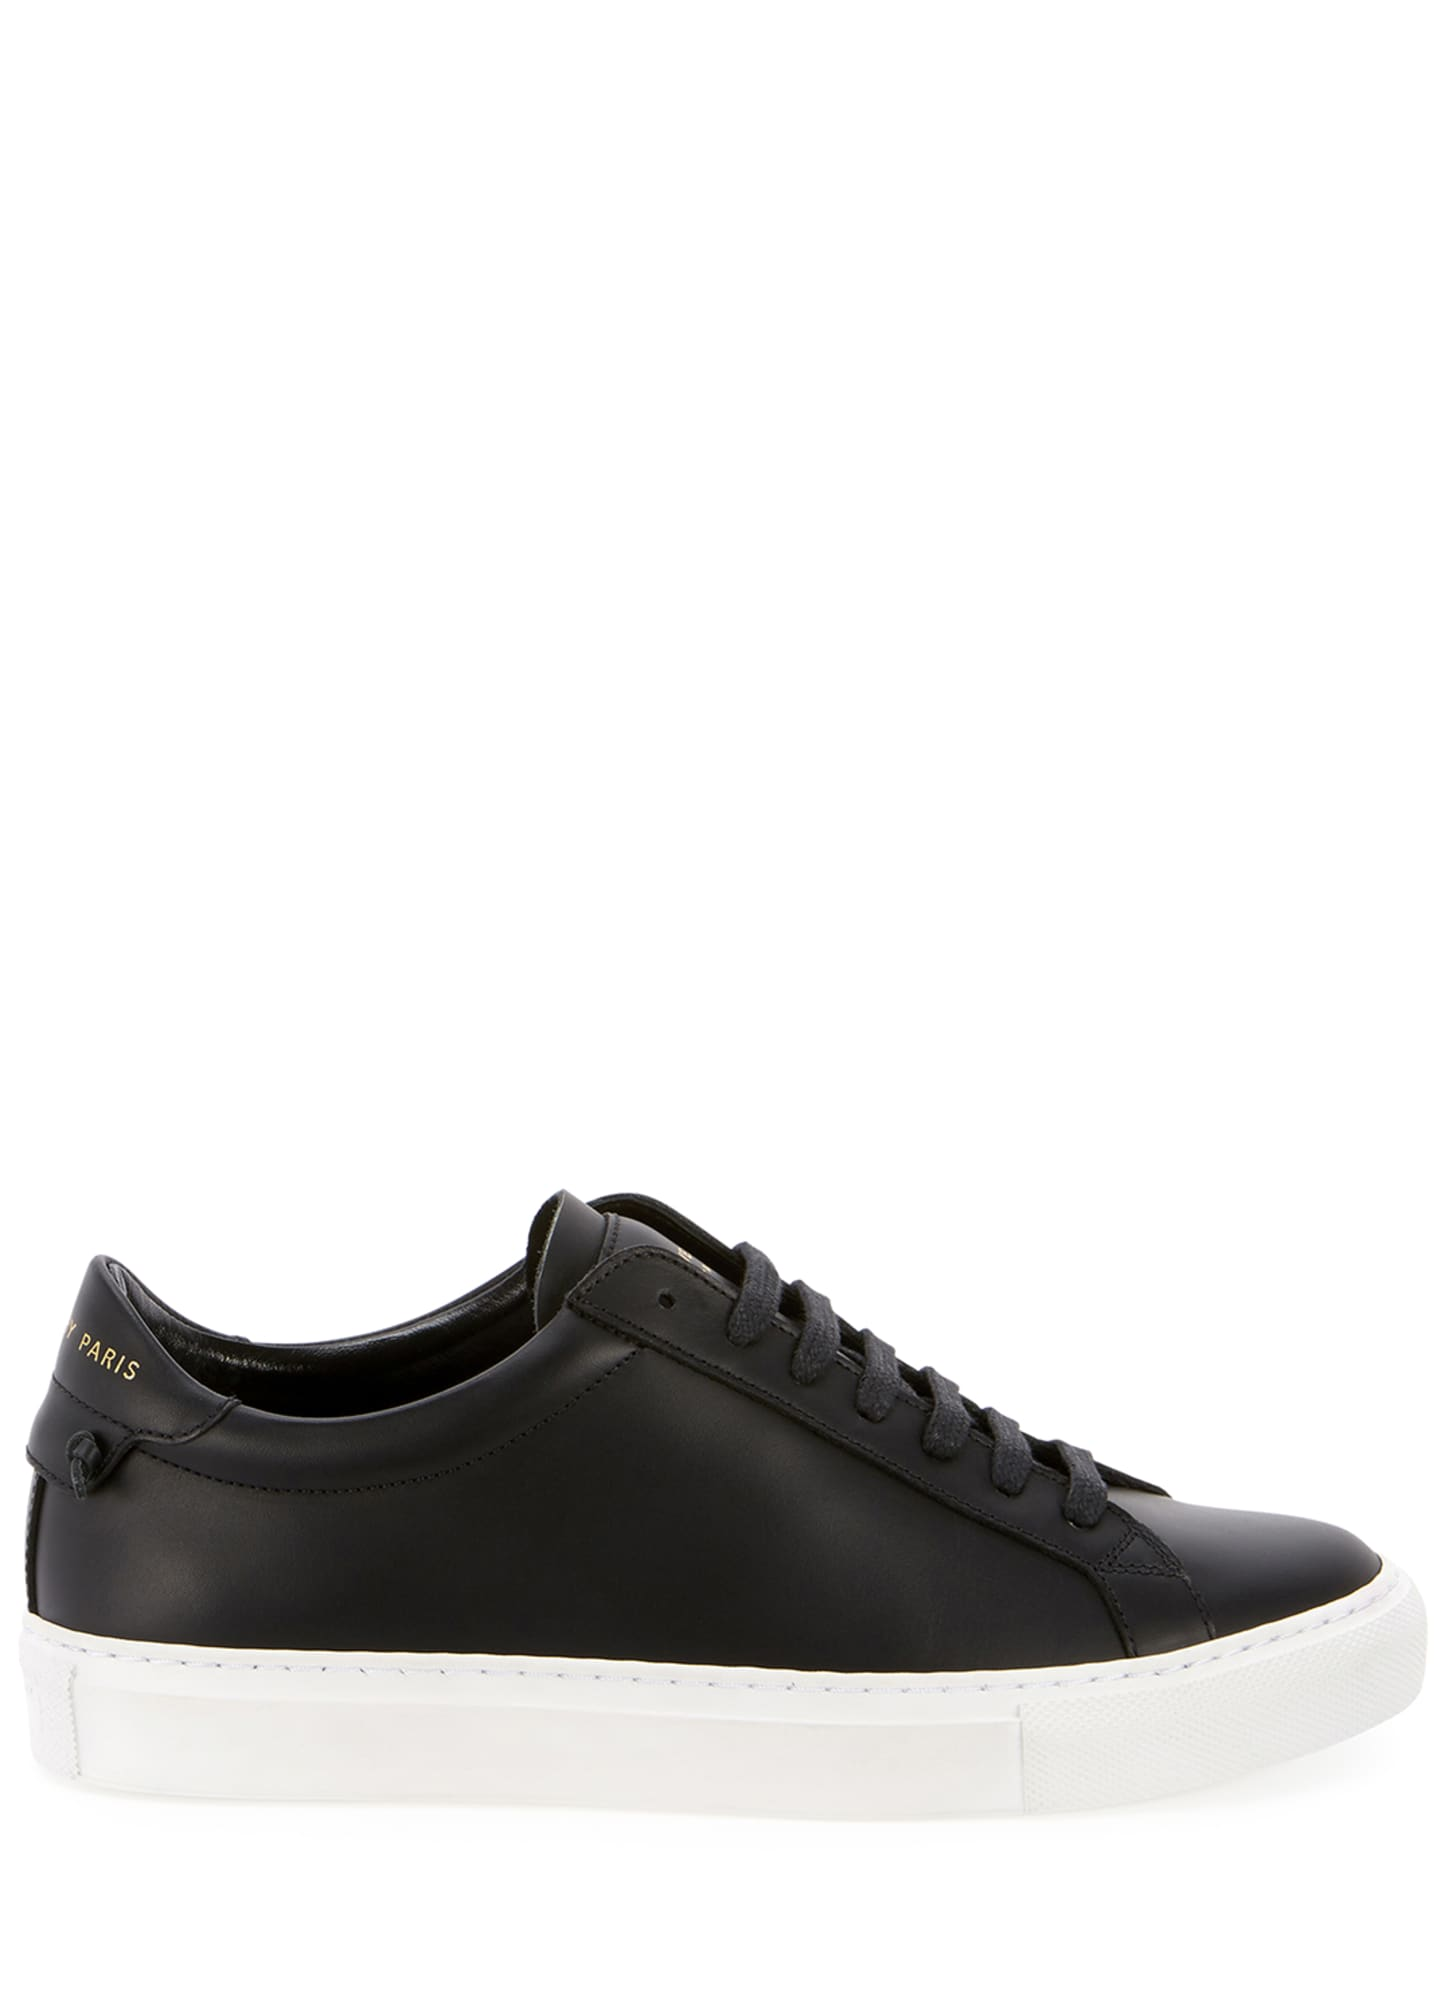 Image 2 of 3: Urban Street Leather Low Sneakers